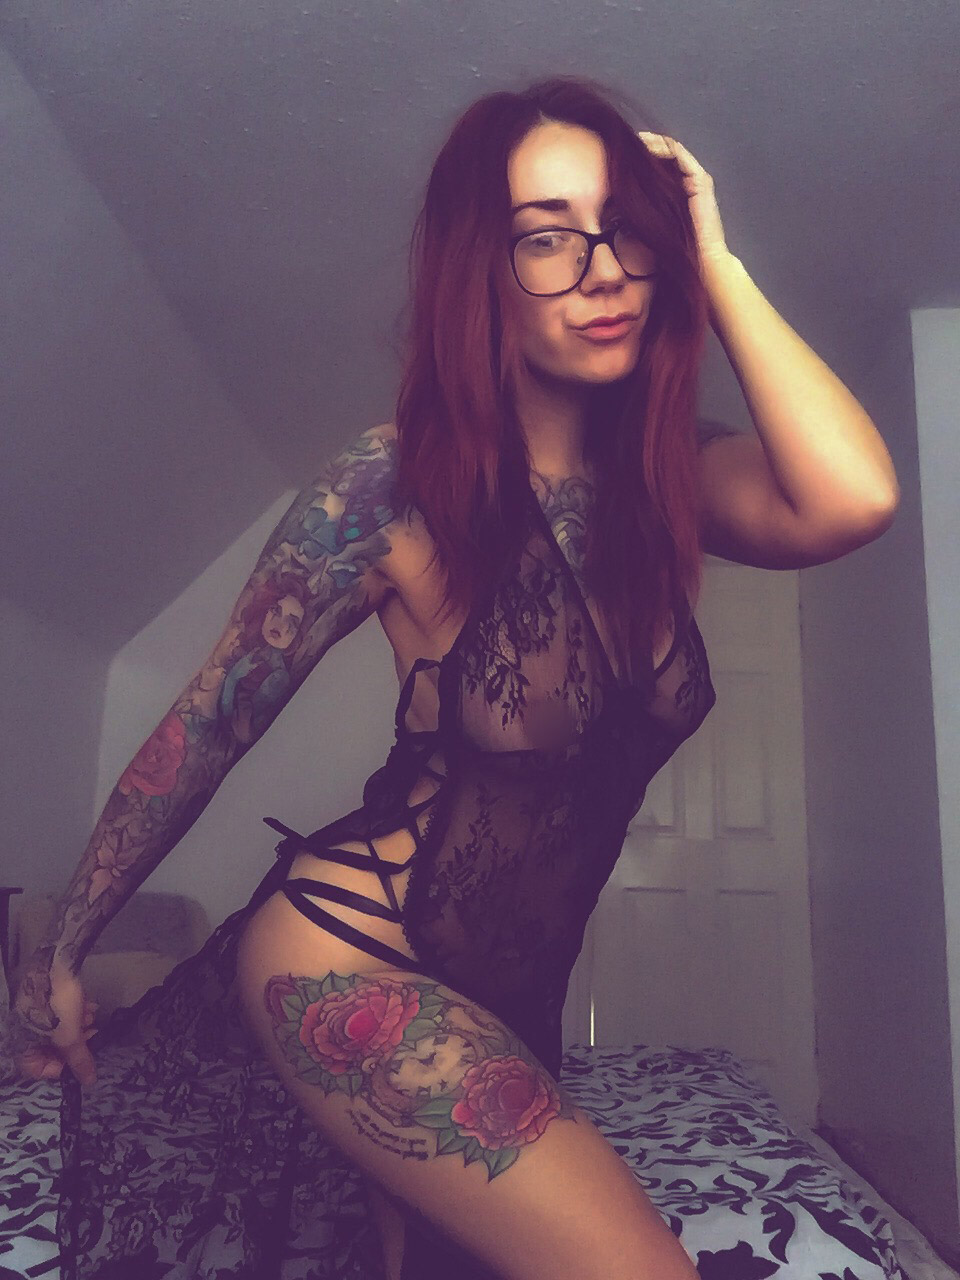 lady-luna-tattooed-alt-model-pinup-20